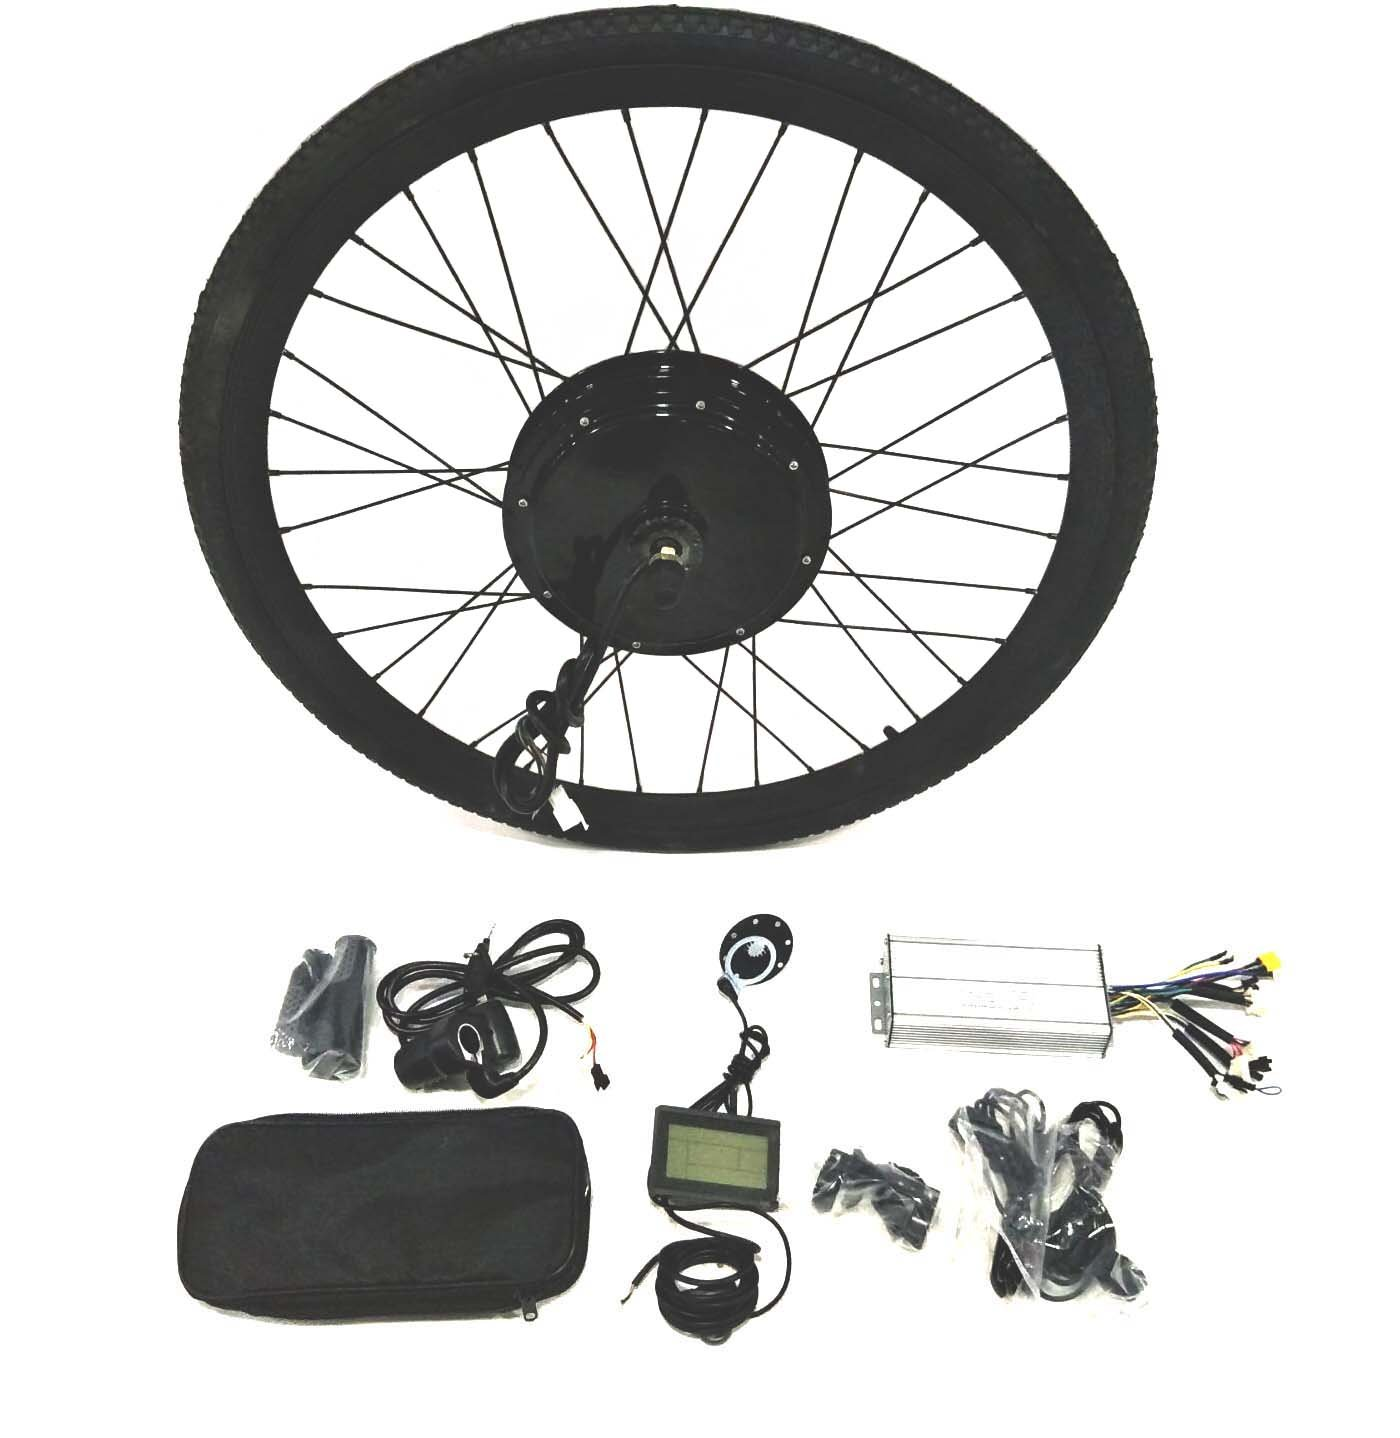 48V1500W 電動自転車変換キットギ Electric Bike Conversion Kit + LCD+ Tire Theebikemotor B01NBU1HB7 26